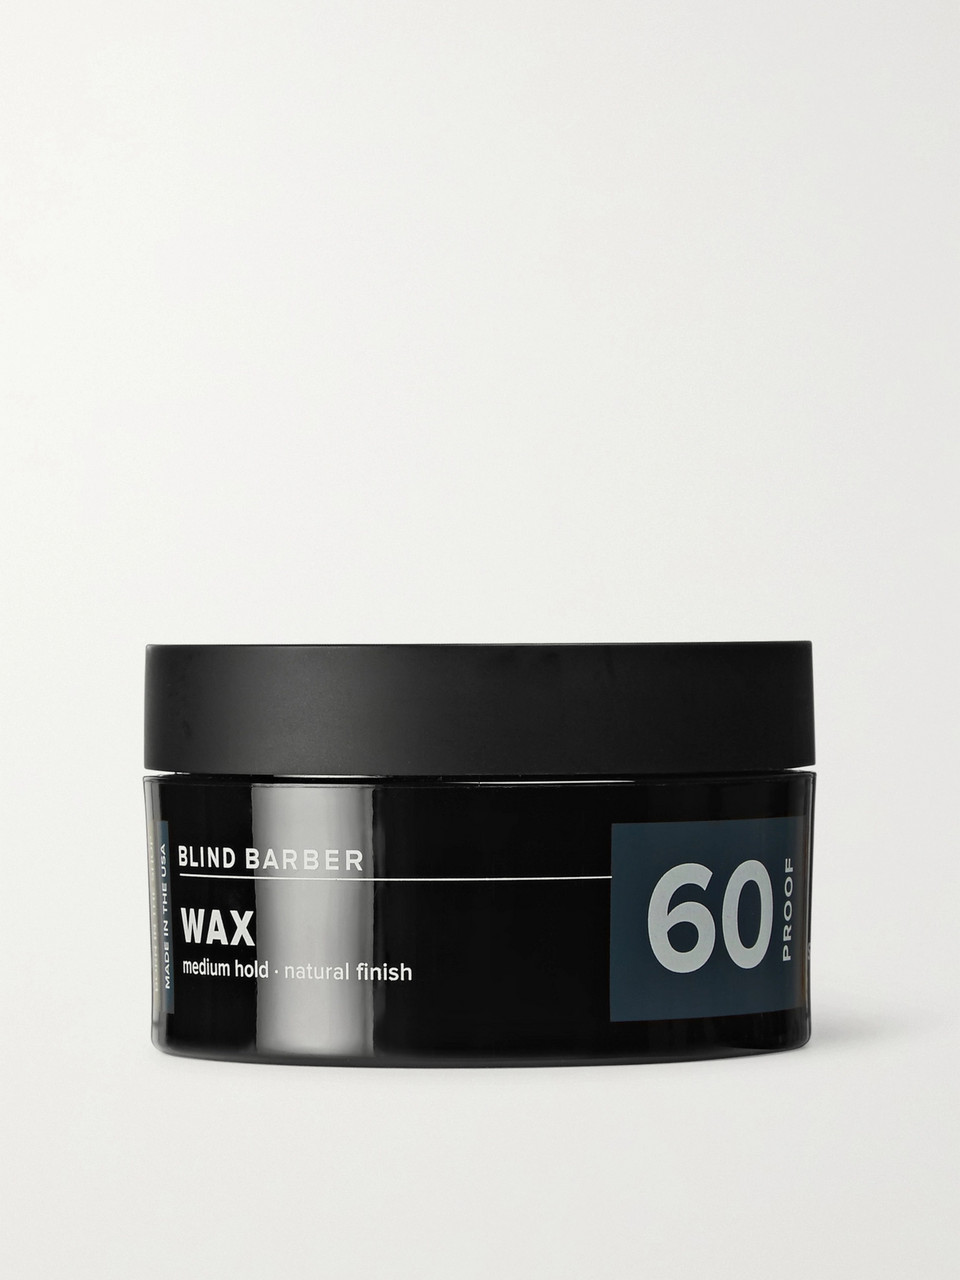 Blind Barber 60 Proof Wax, 75ml